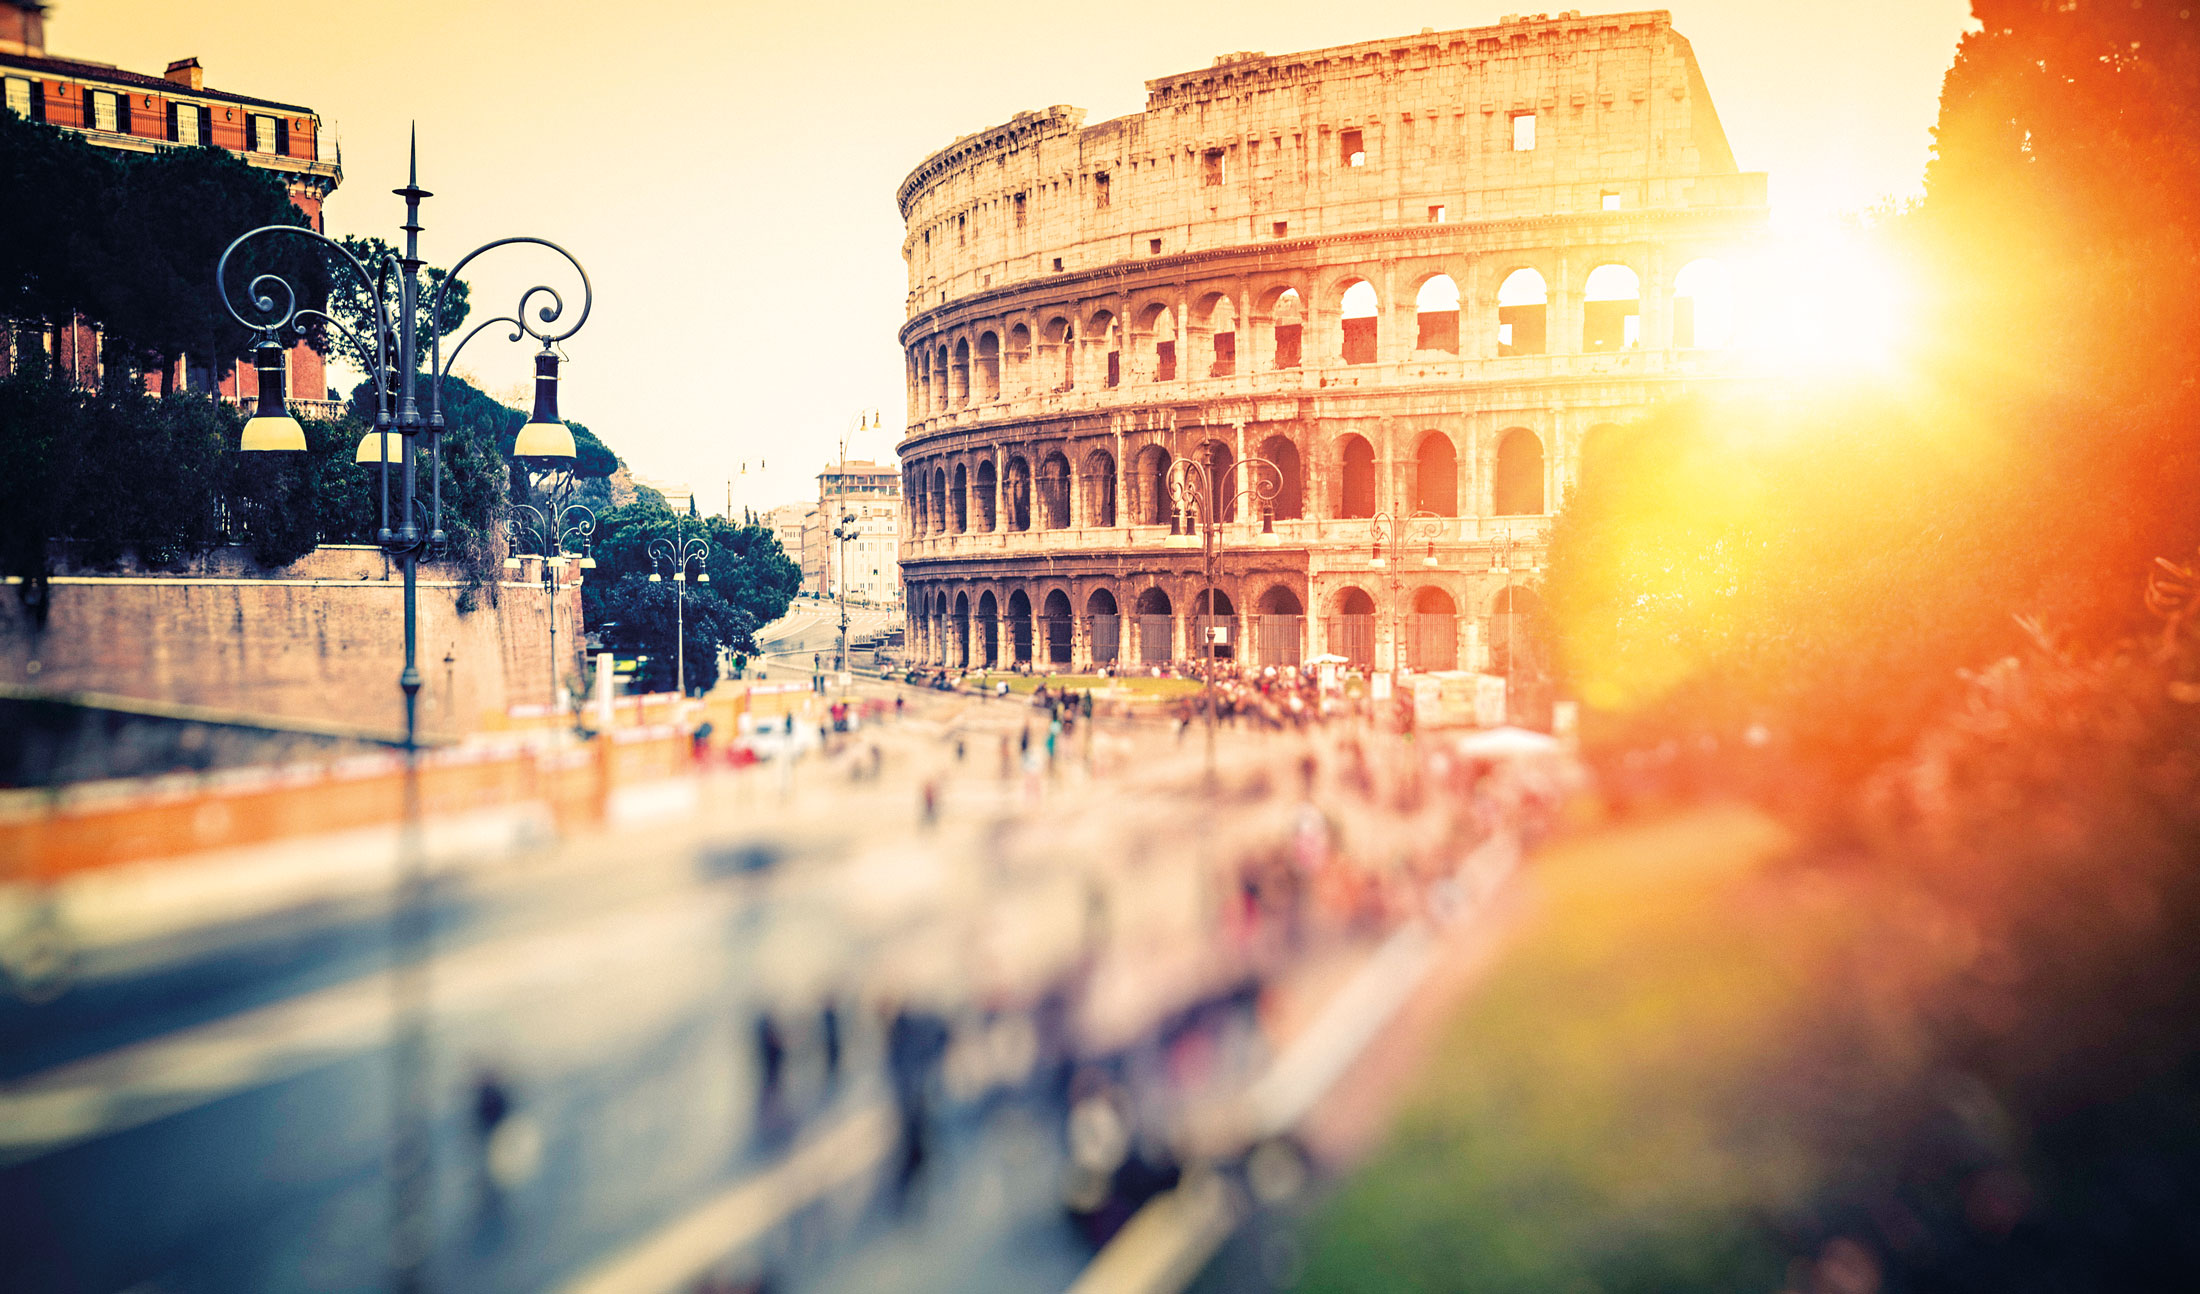 With time taking its toll on Rome's Colosseum, in 2012 the Italian Government implemented a €25m restoration project. However, public funds were limited, meaning private institutions had to step in to provide financial assistance